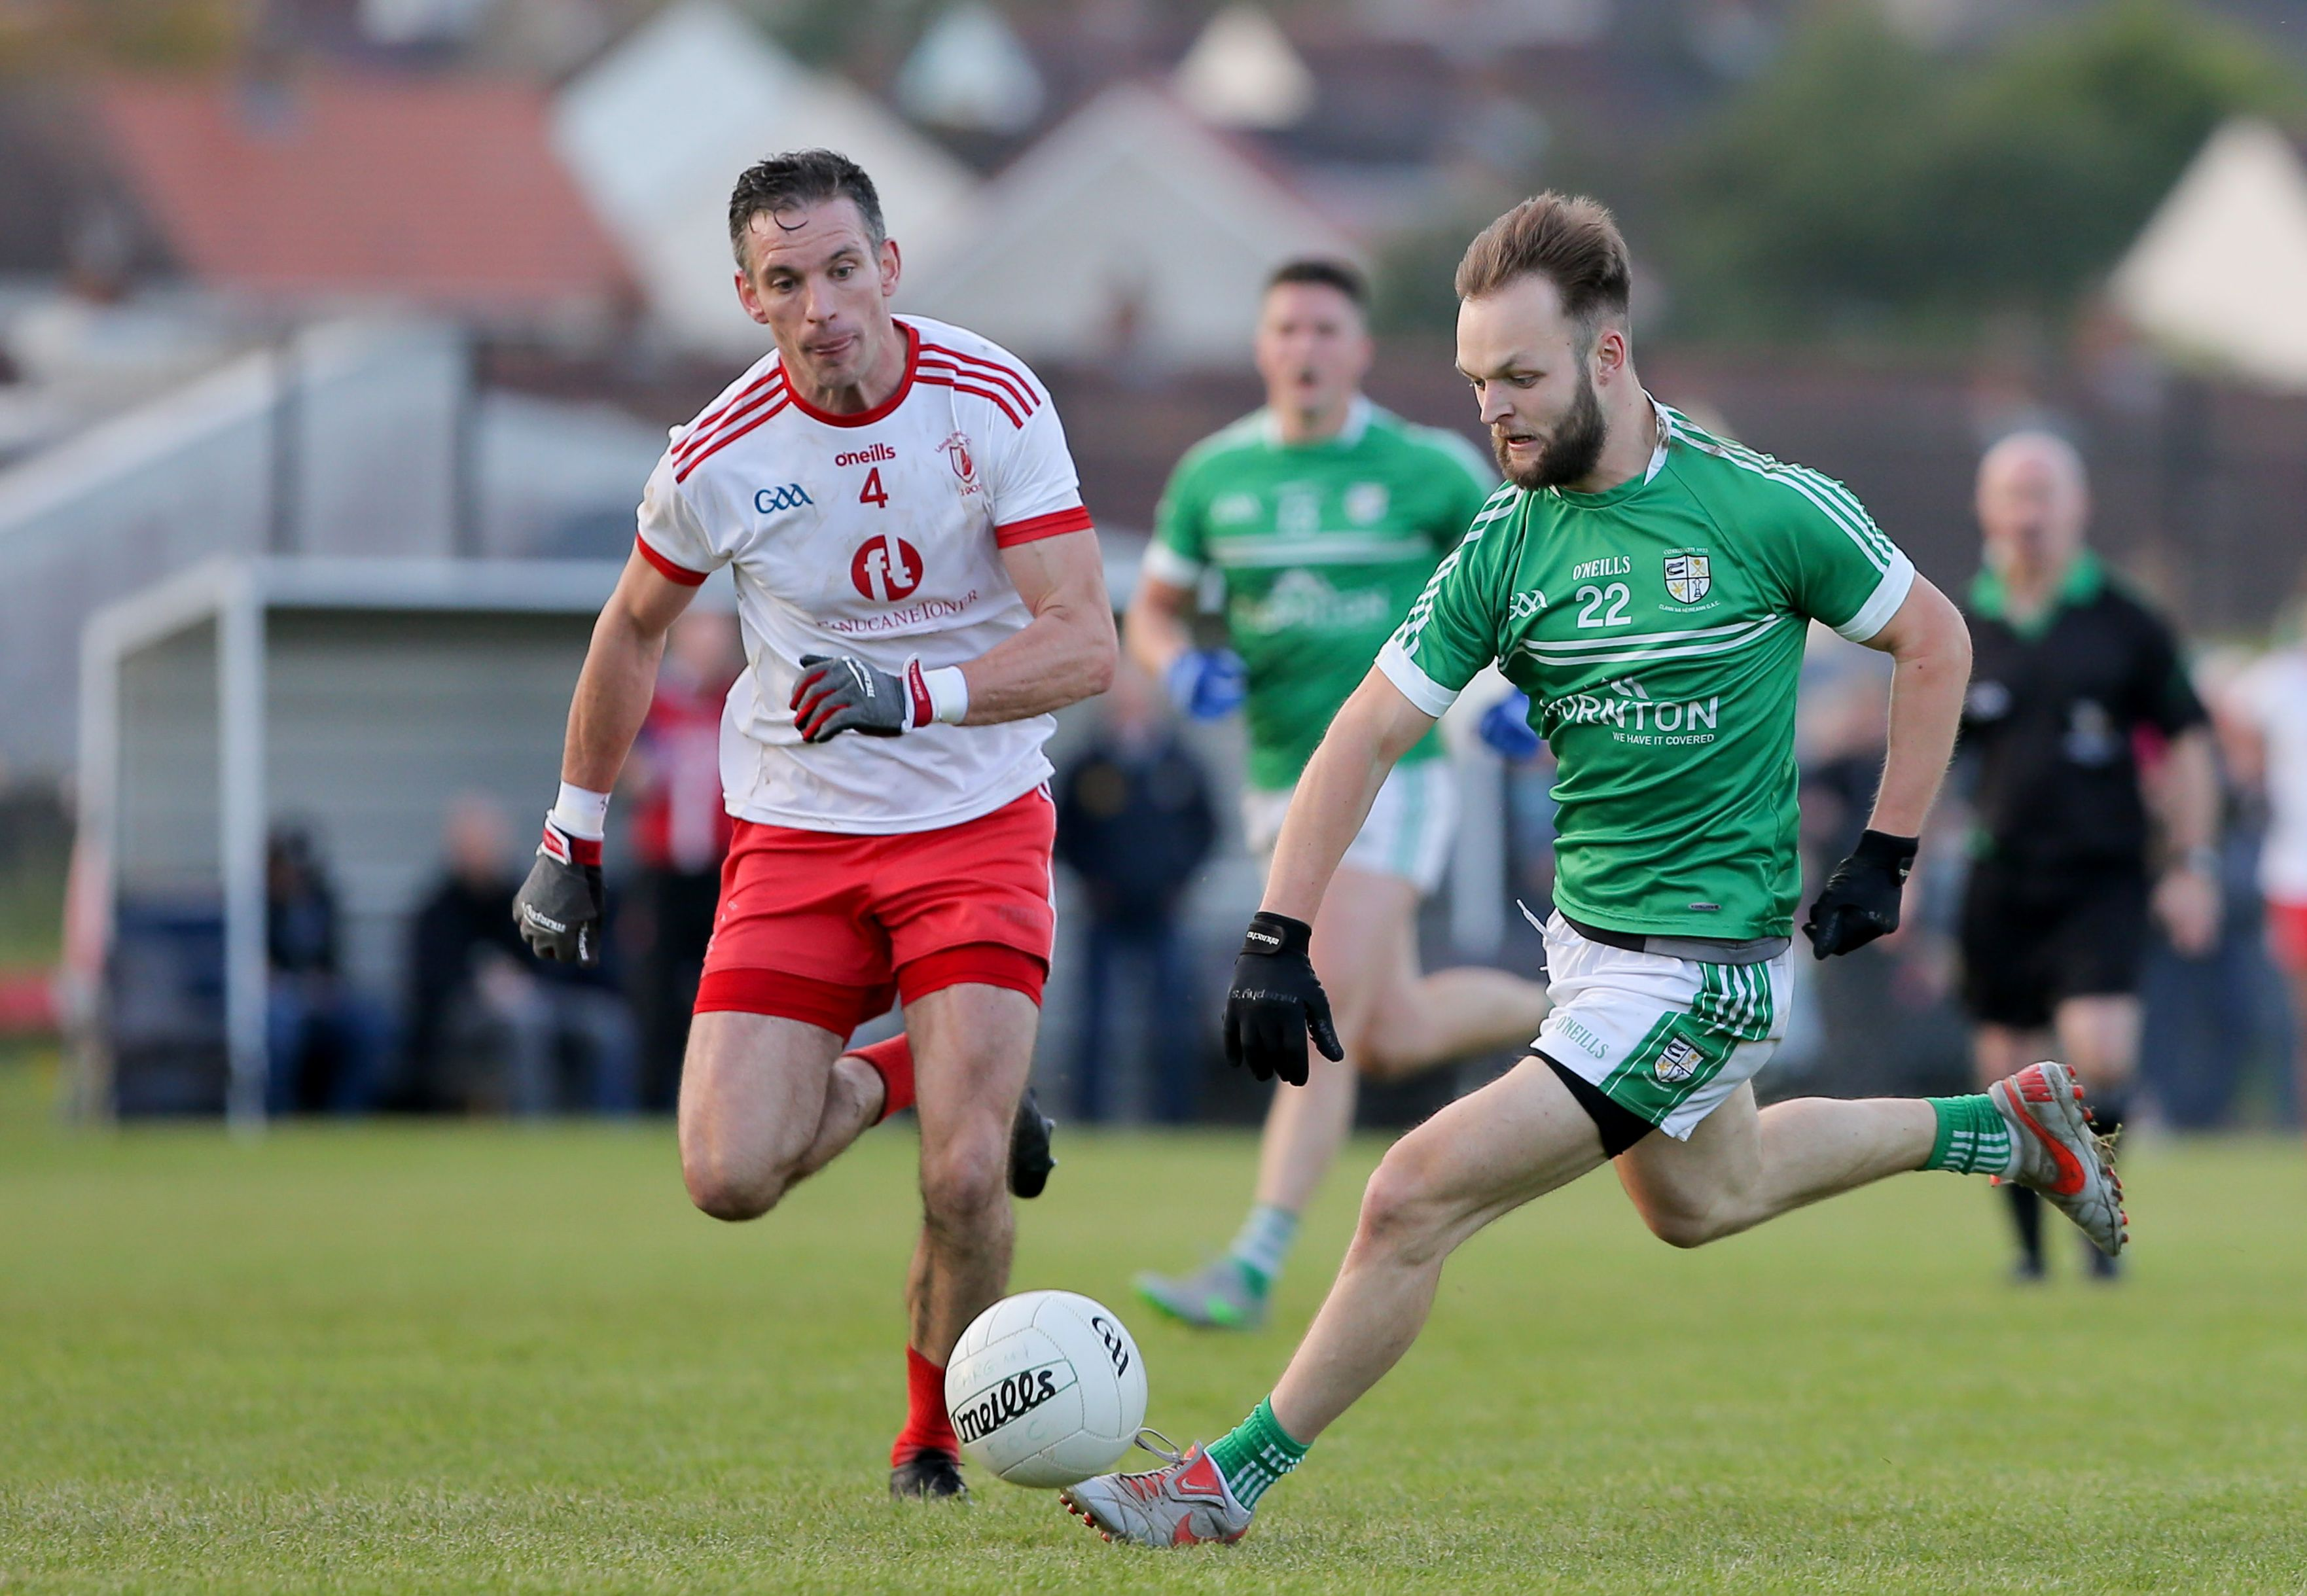 The game at Hannahstown between Lámh Dhearg and Cargin on Sunday will be streamed live by PaircTV at 5pm